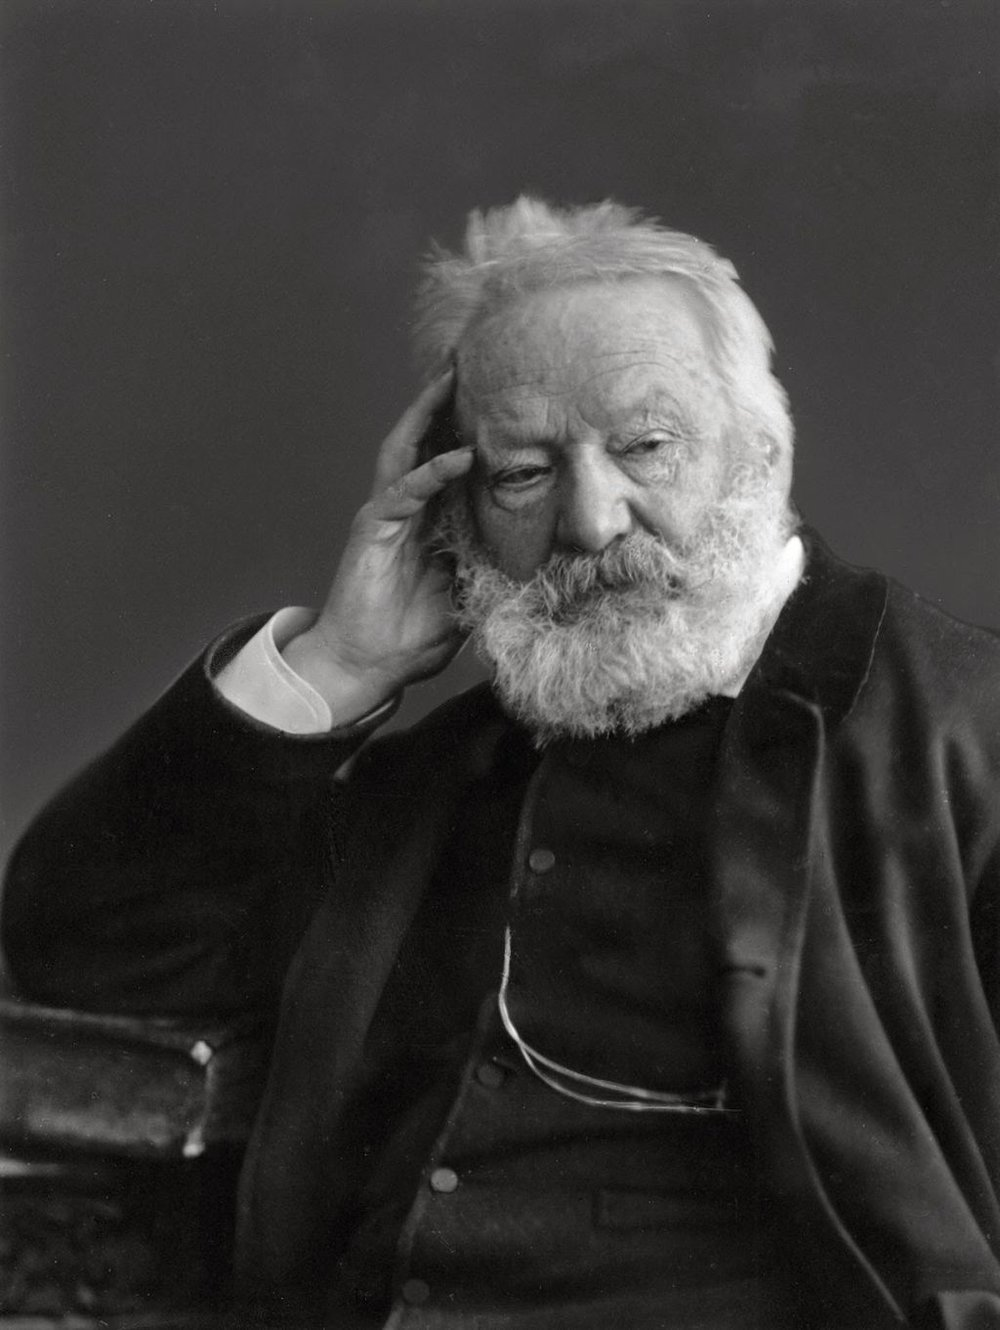 Photo courtesy of Wikimedia Commons.  Victor Hugo author of Les Misérables.